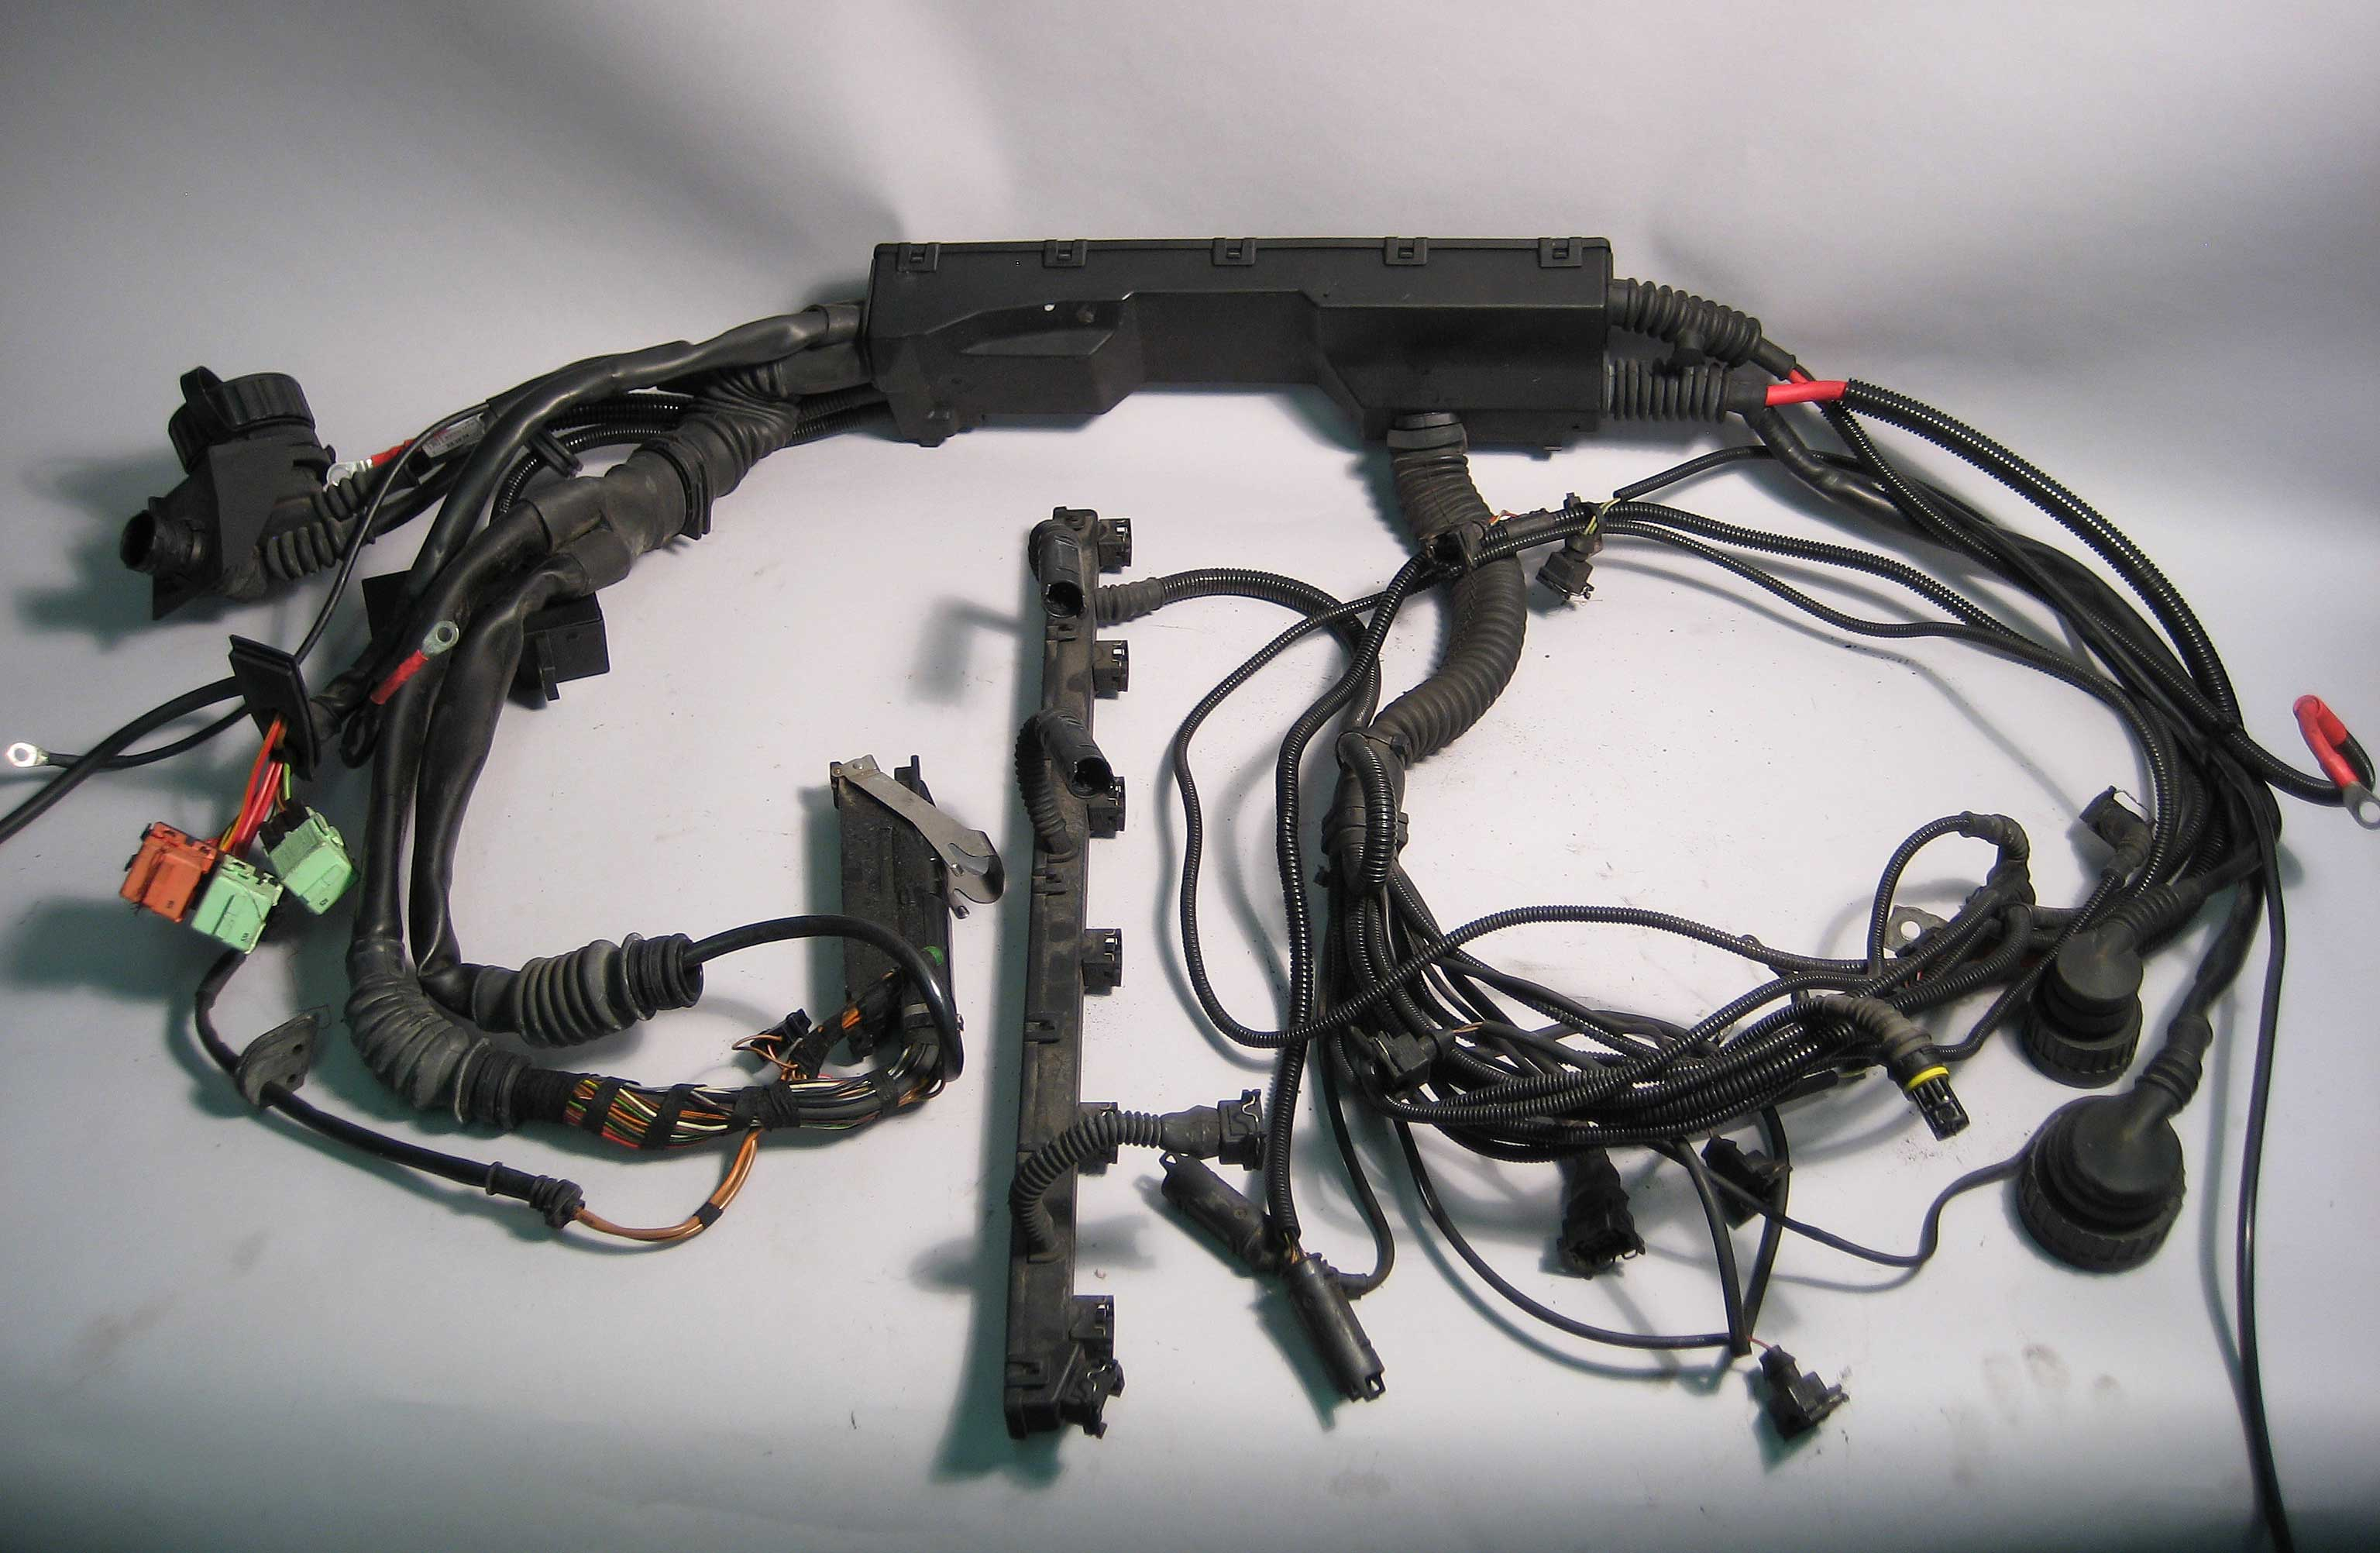 bmw wiring harness repair kit wiring solutions rh rausco com 2003 BMW 325I Wiring Harness BMW Wiring Harness Chewed Up